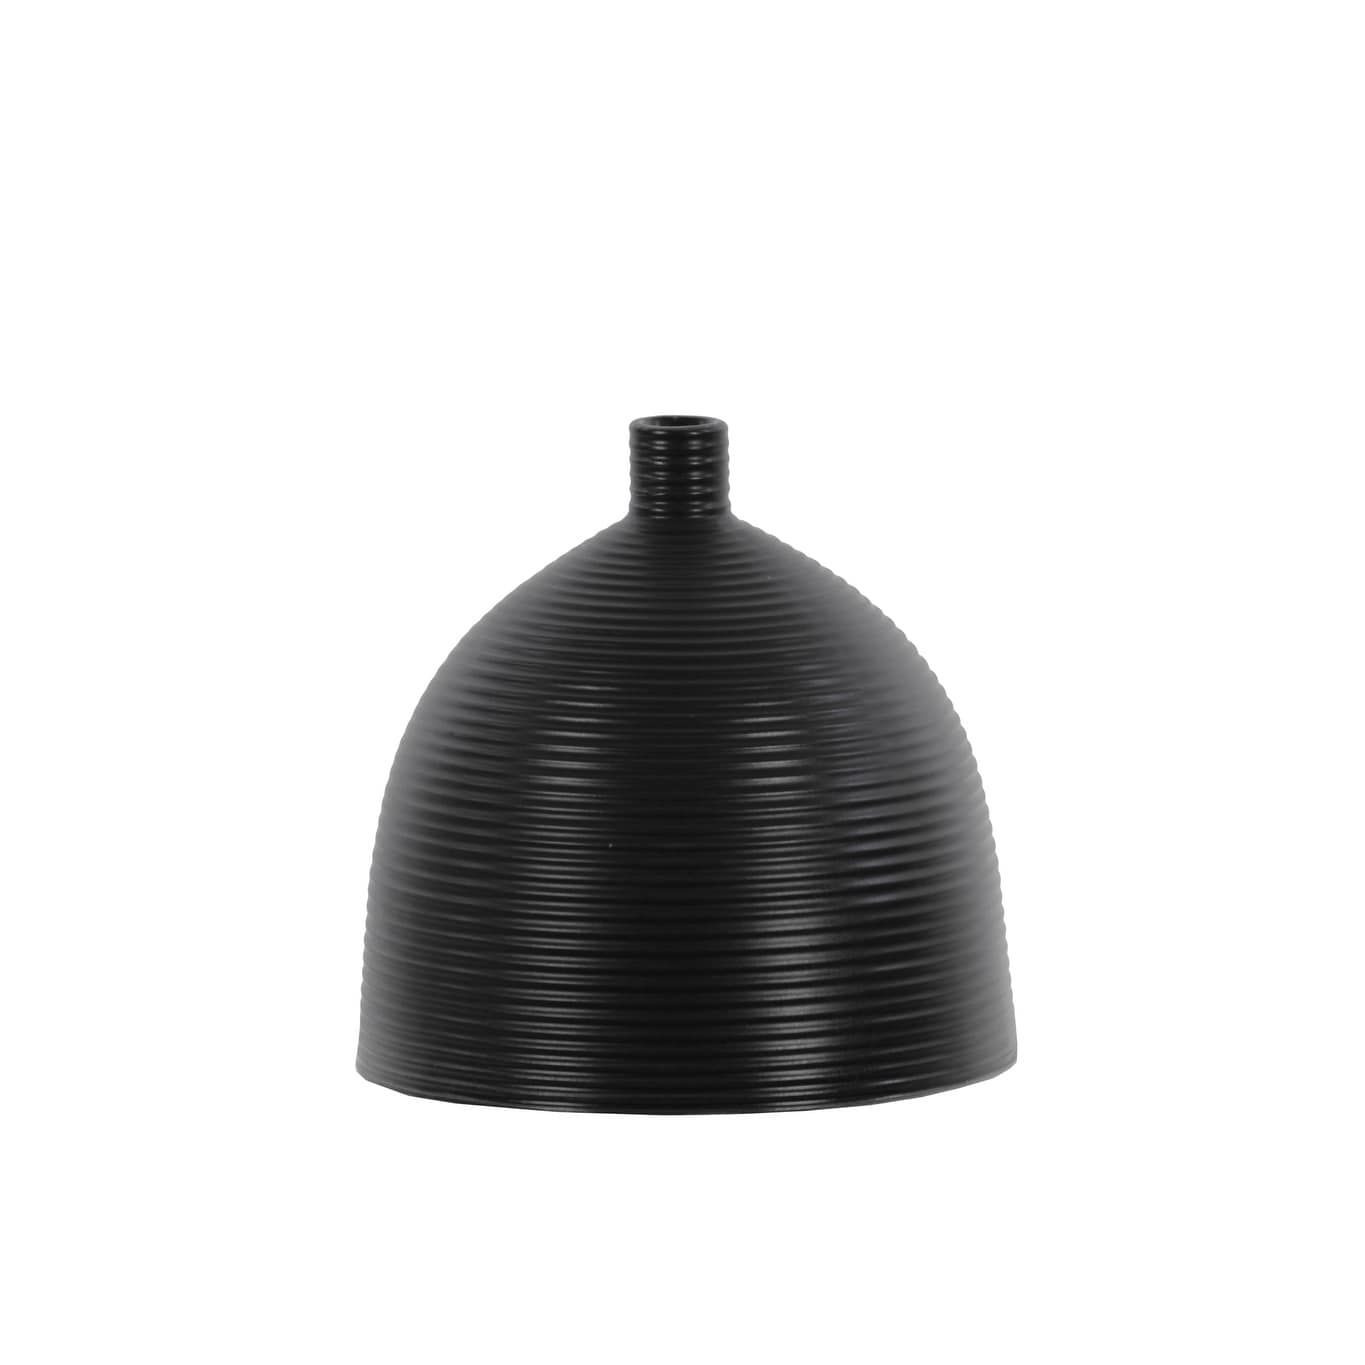 black plastic vase of urban trends collection utc51011 ceramic round sm vase coated finish with regard to urban trends collection utc51011 ceramic round sm vase coated finish black